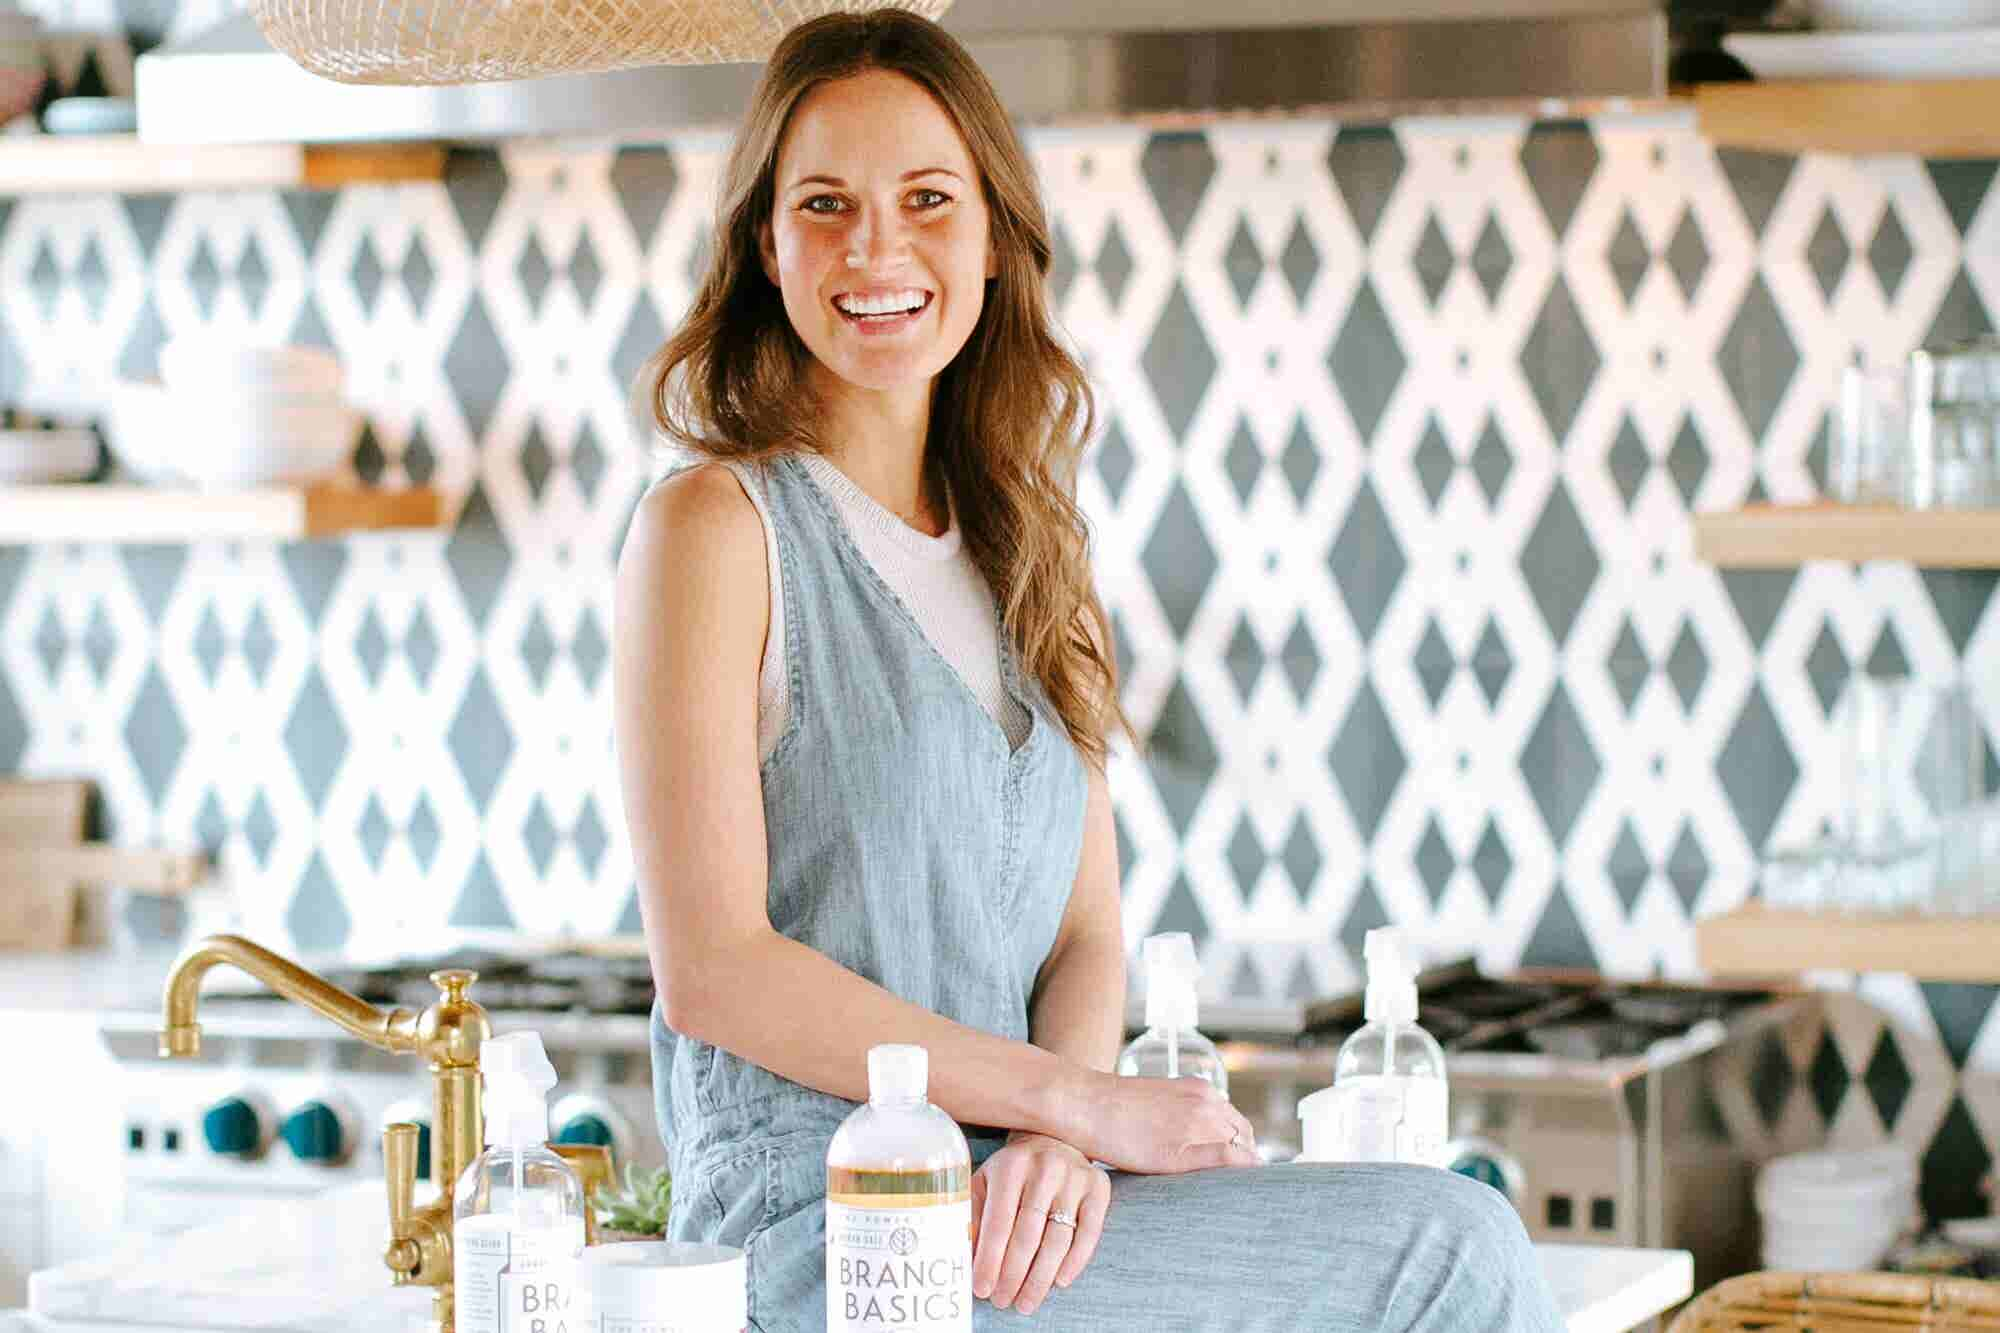 'We Had a Feeling of Failure And Guilt' Says This Founder Who Shut Down Her Company and Relaunched With the Help of Her Mentor